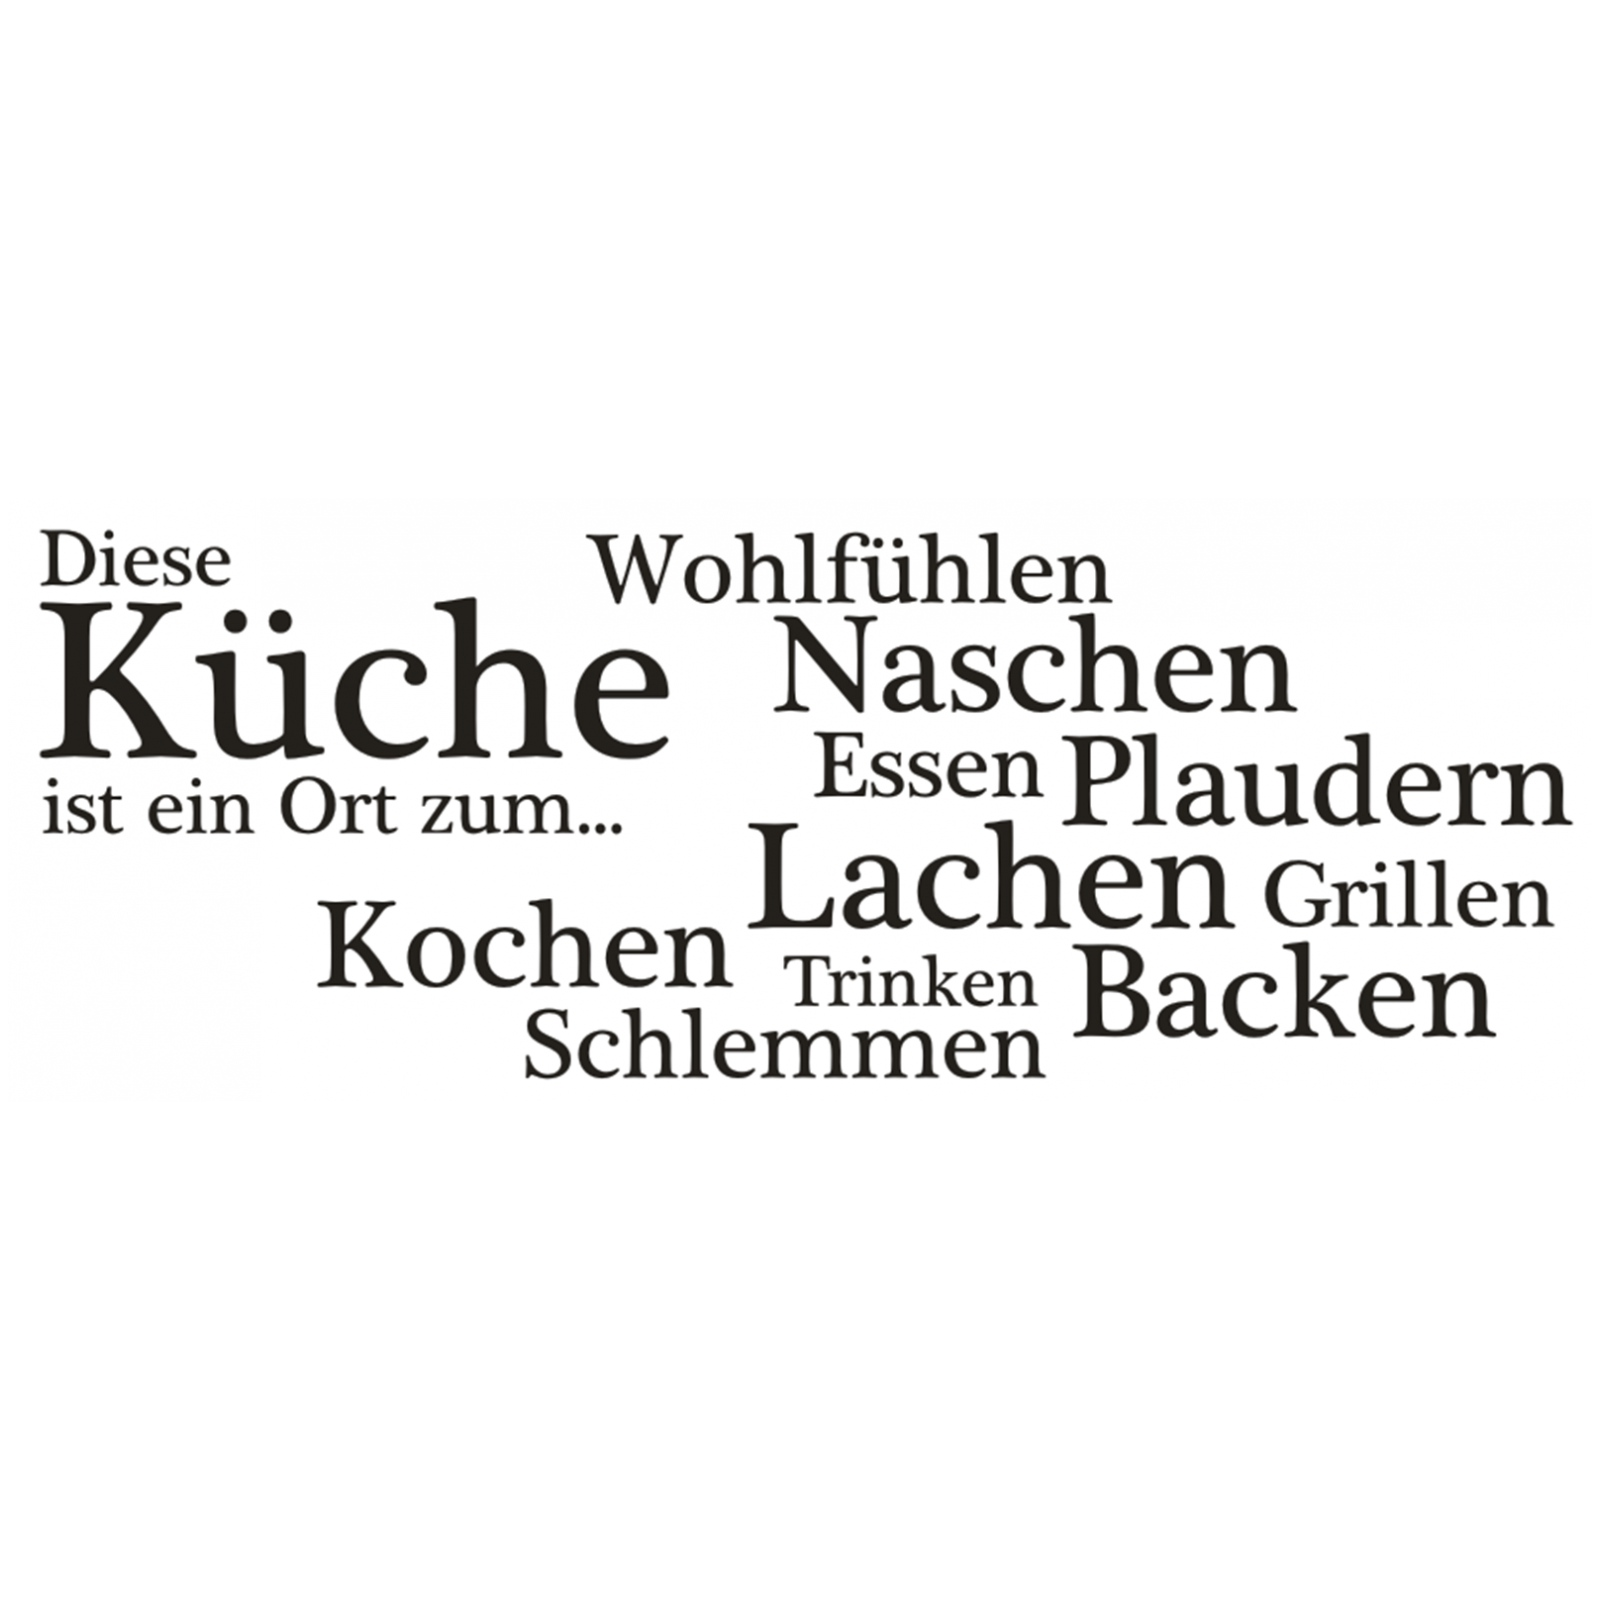 x540 wandtattoo spruch diese k che ort kochen essen wandsticker wandaufkleber ebay. Black Bedroom Furniture Sets. Home Design Ideas